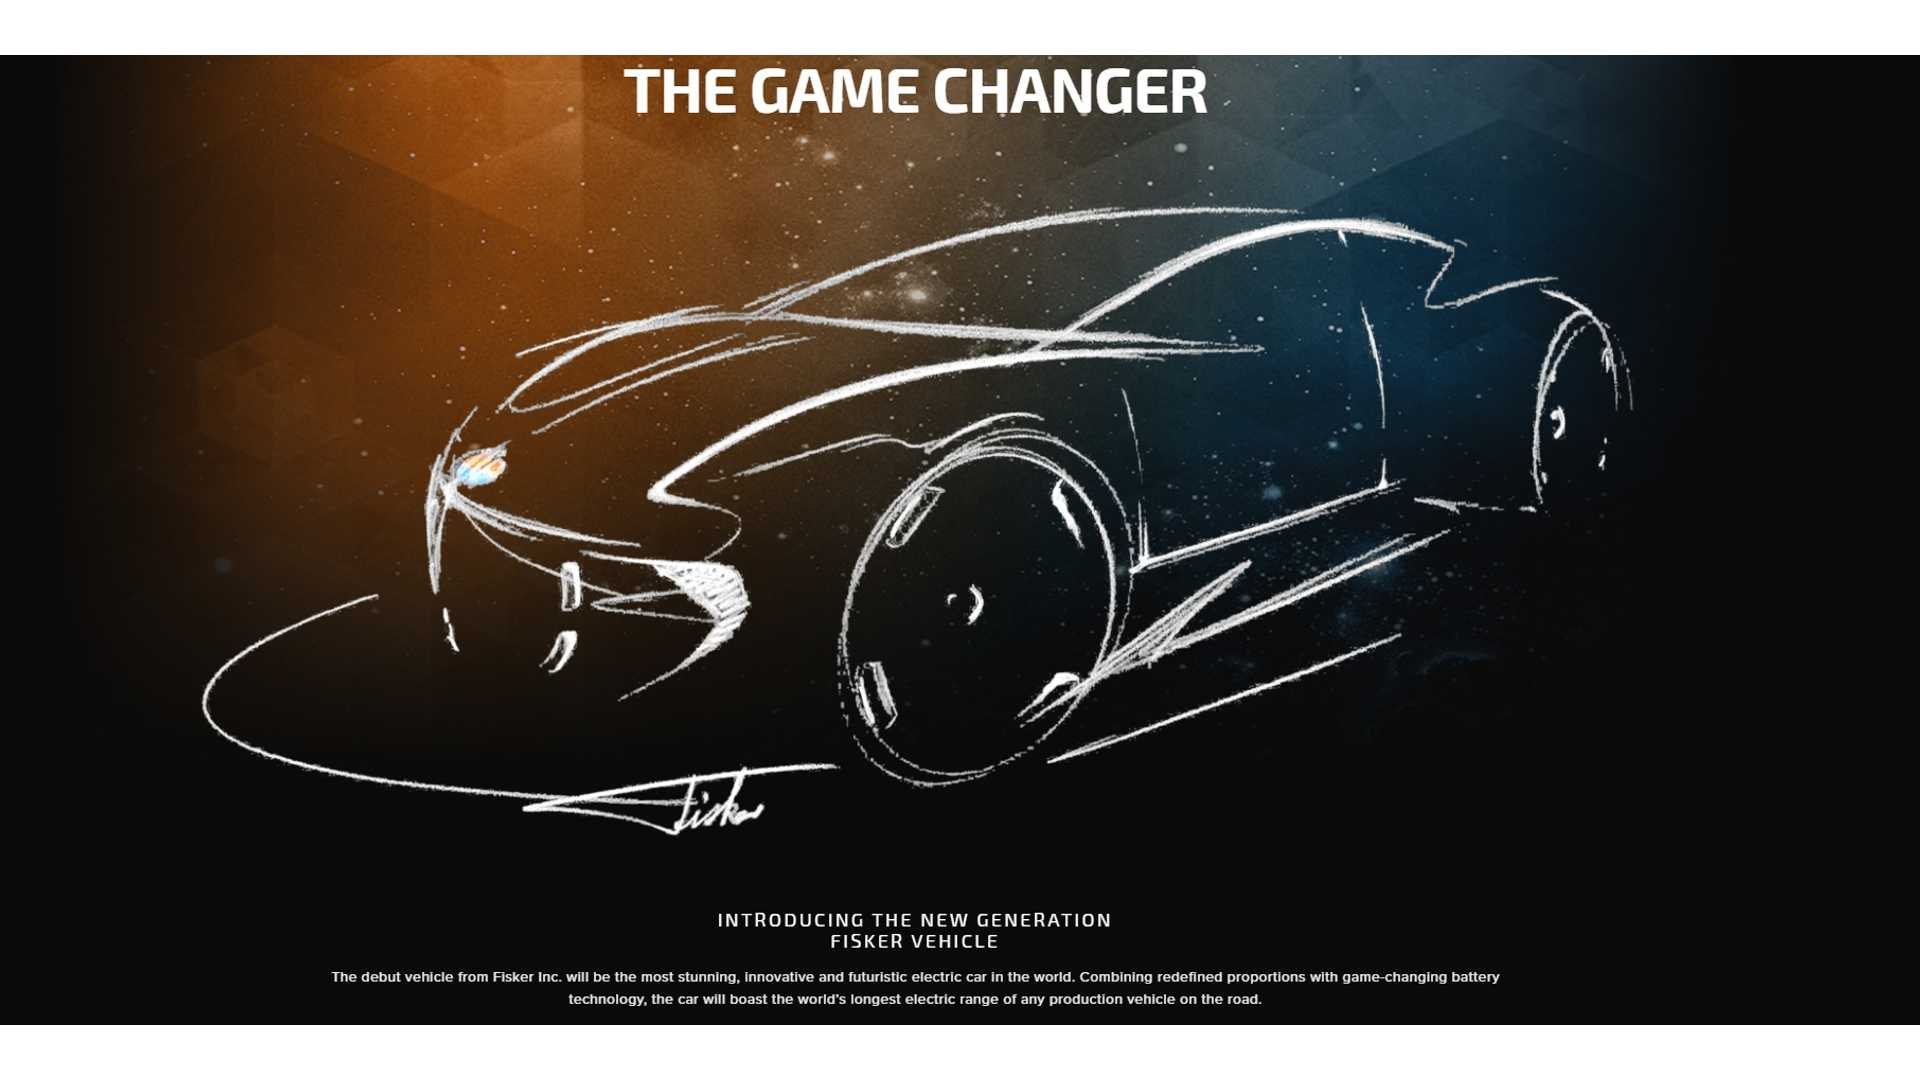 Henrik Fisker Launches Inc New Car In 2017 To Disrupt Ev Market Change The World